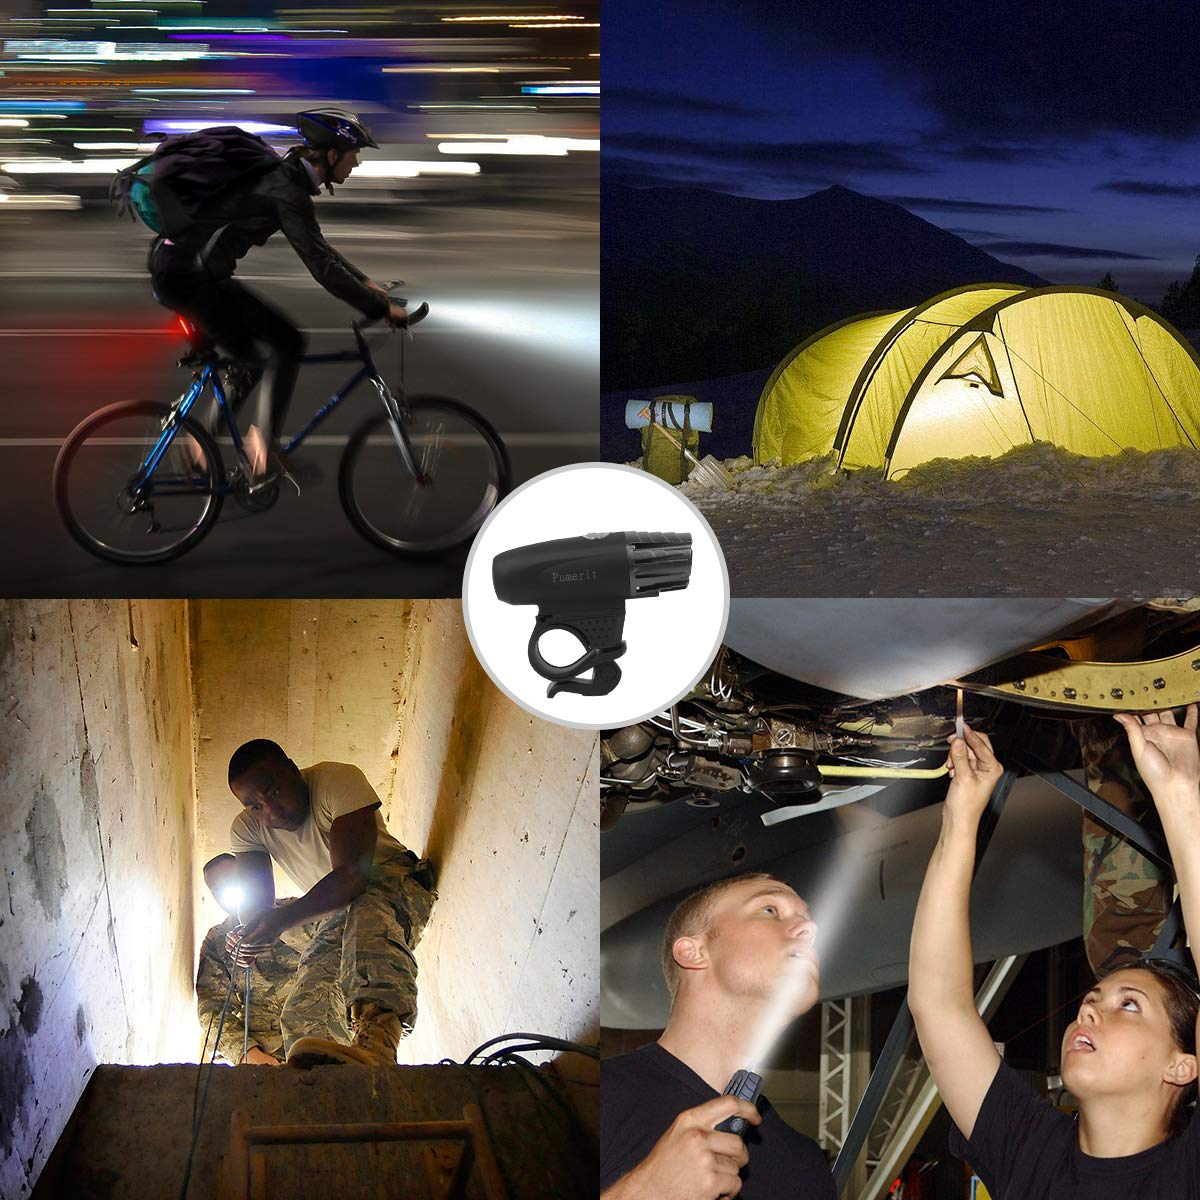 Bonnevie USB Rechargeable Bike Light Set,1500mA Powerful Waterproof Mountain Bicycle Headlight and Taillight Set Super Bright Front Light and Rear Light for Cycling Safety by Bonnevie (Image #7)